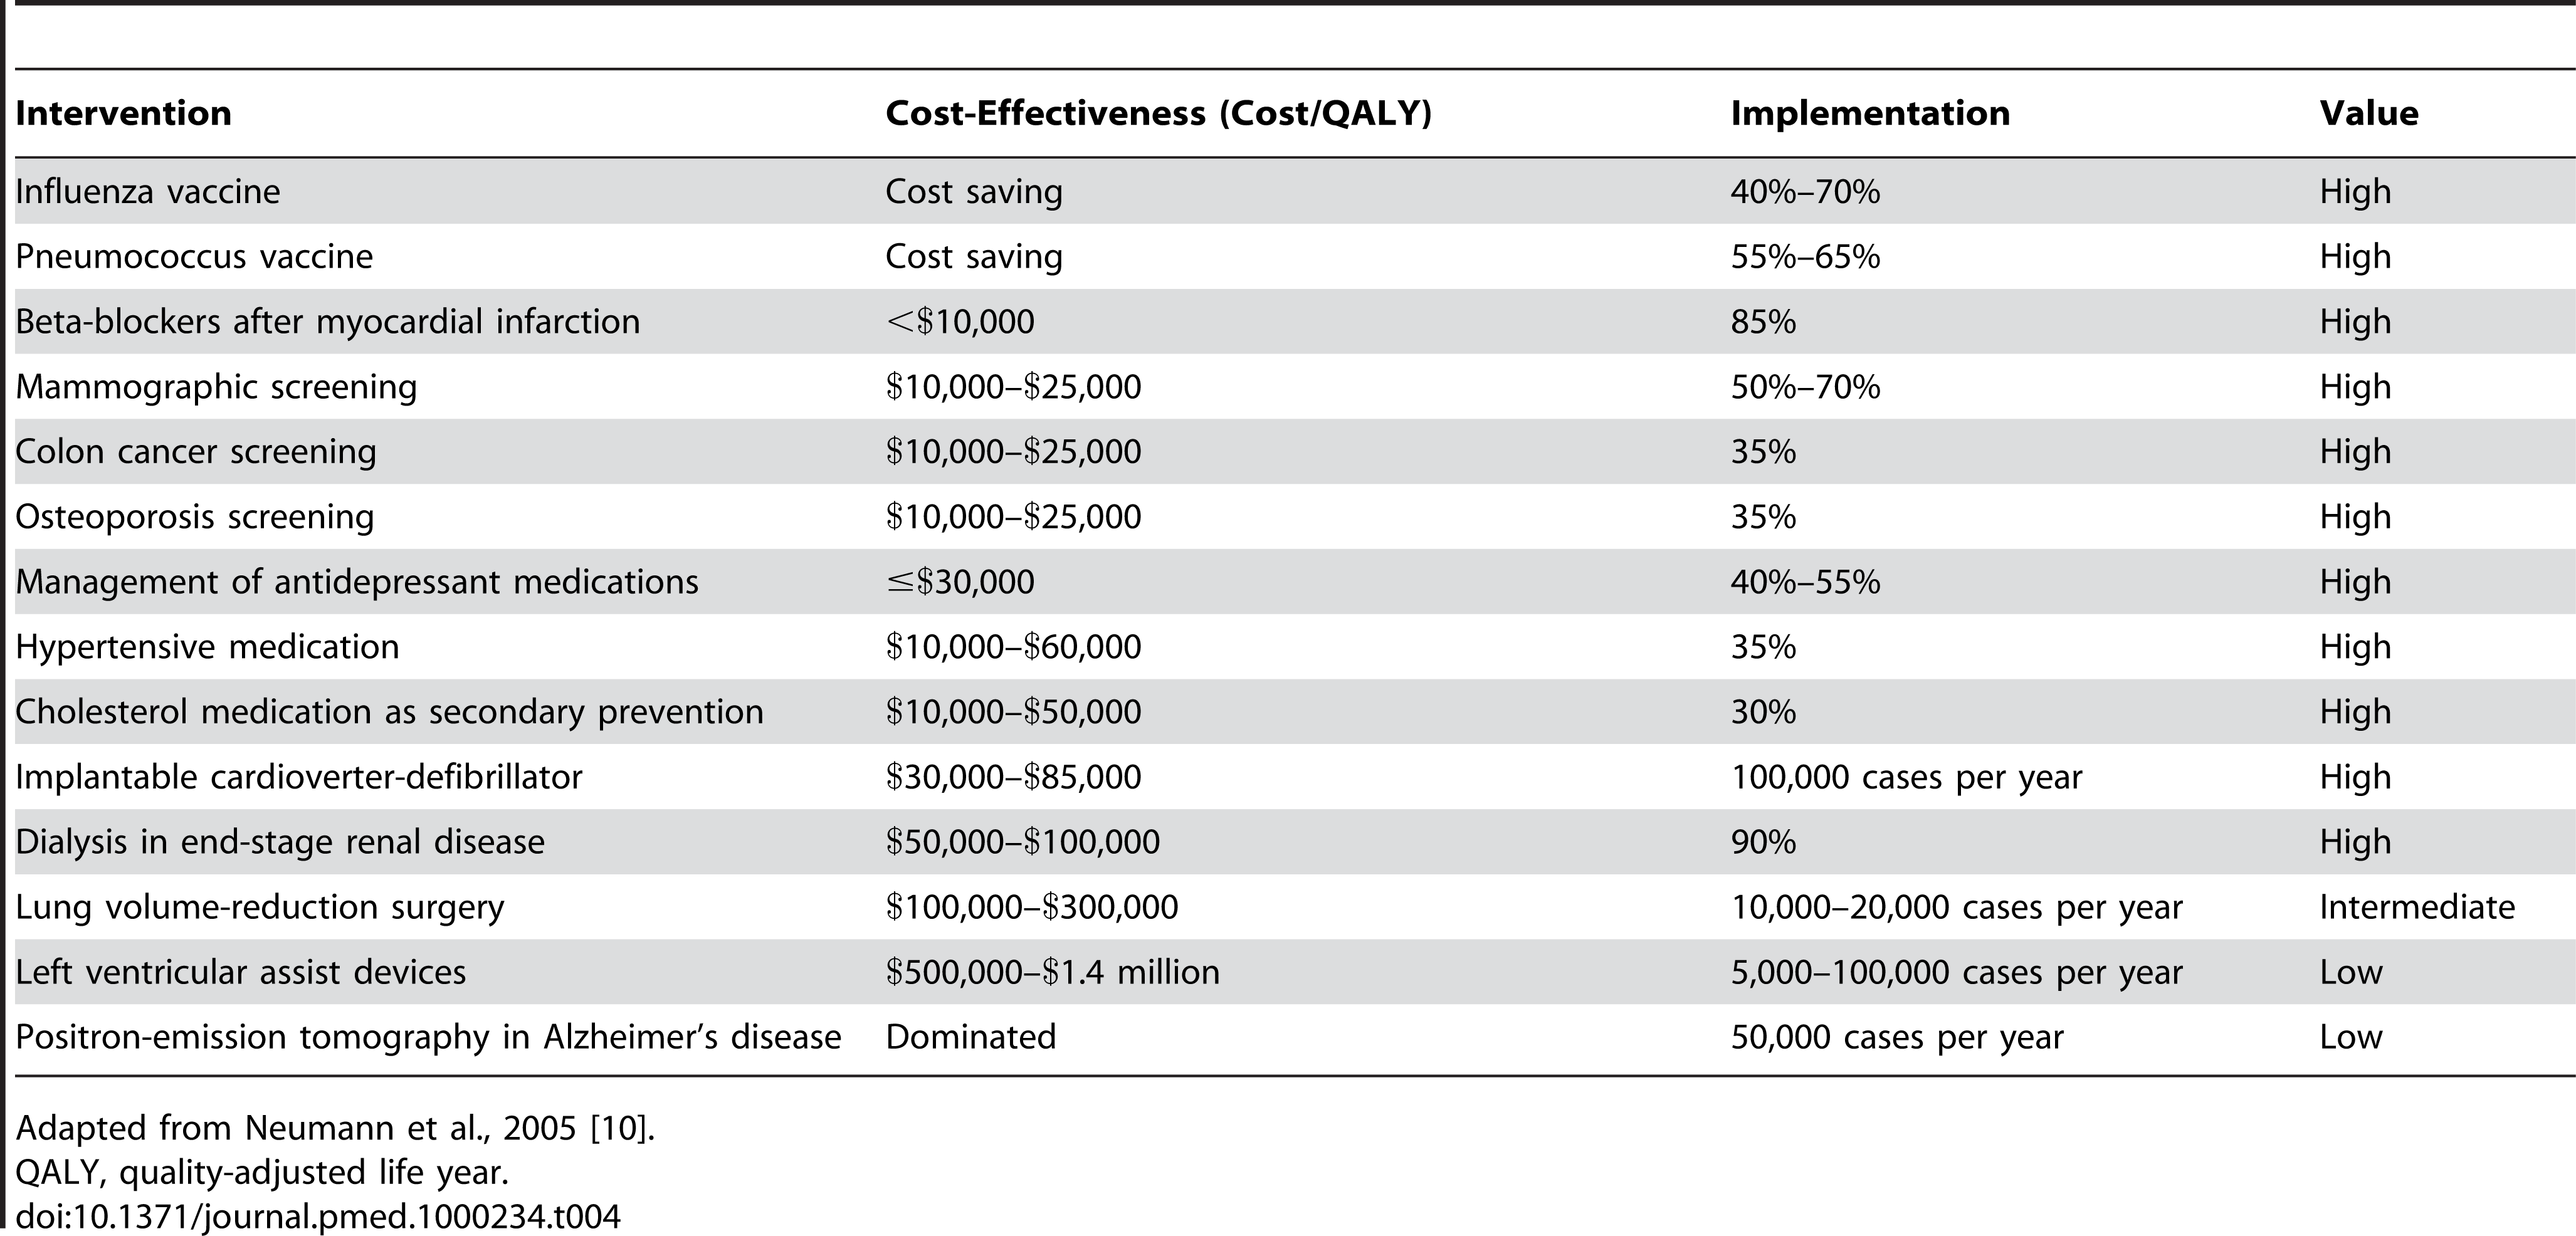 Cost-effectiveness and use of selected interventions in the Medicare population.